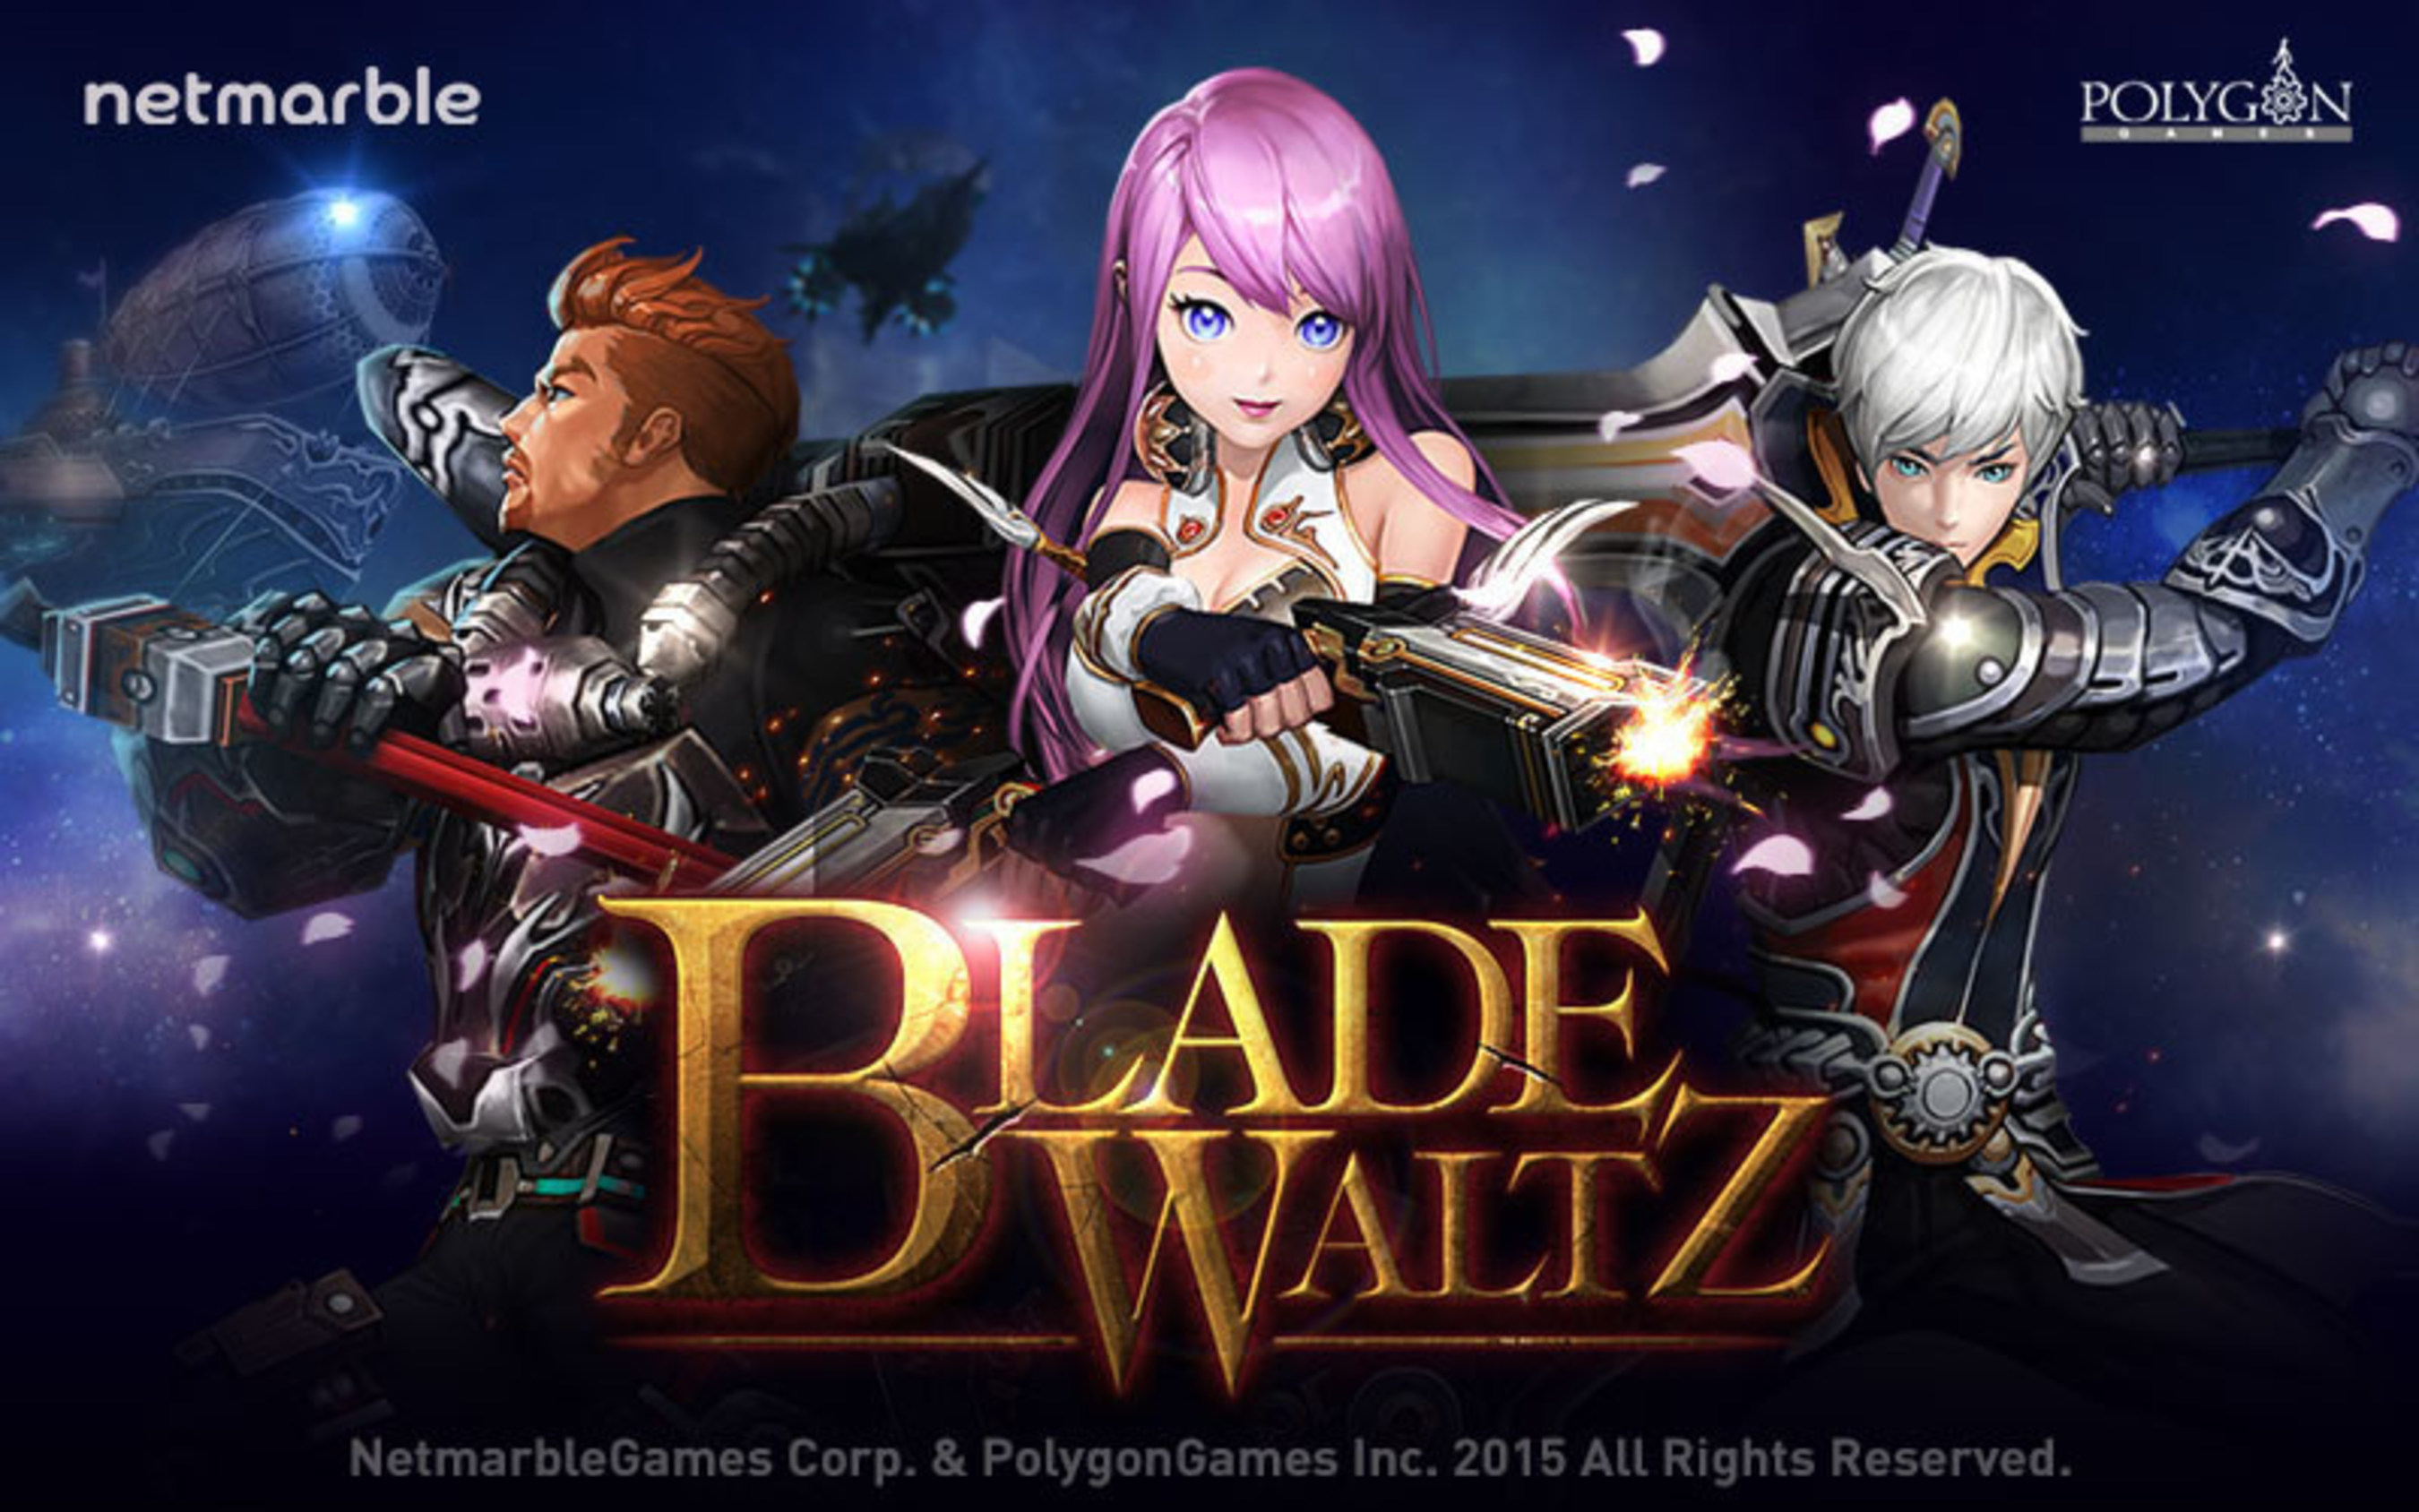 Blade Waltz, Newest Action RPG From Netmarble, Available Now For iOS And Android Devices